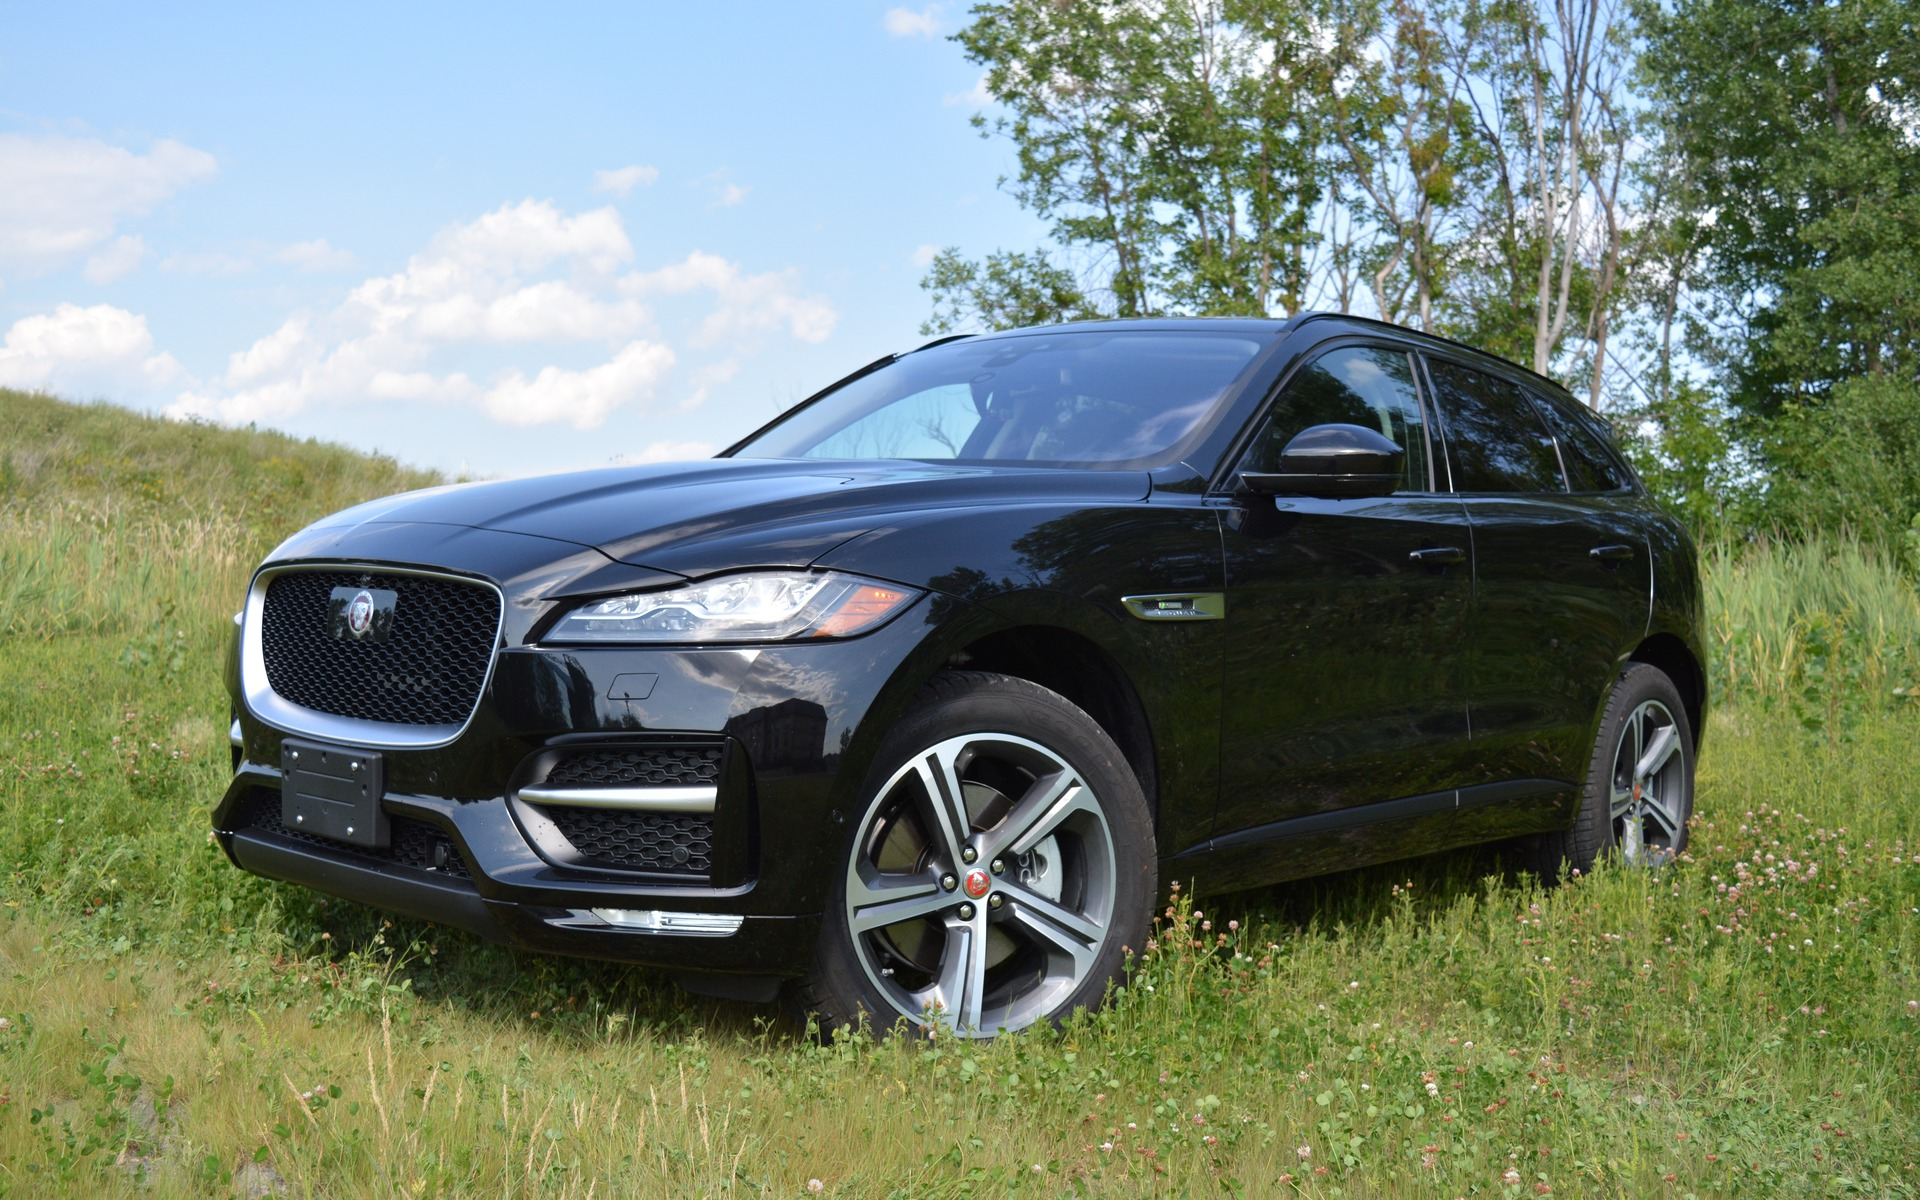 2017 jaguar f pace r sport 35t the answer to someone s question 1 29. Black Bedroom Furniture Sets. Home Design Ideas